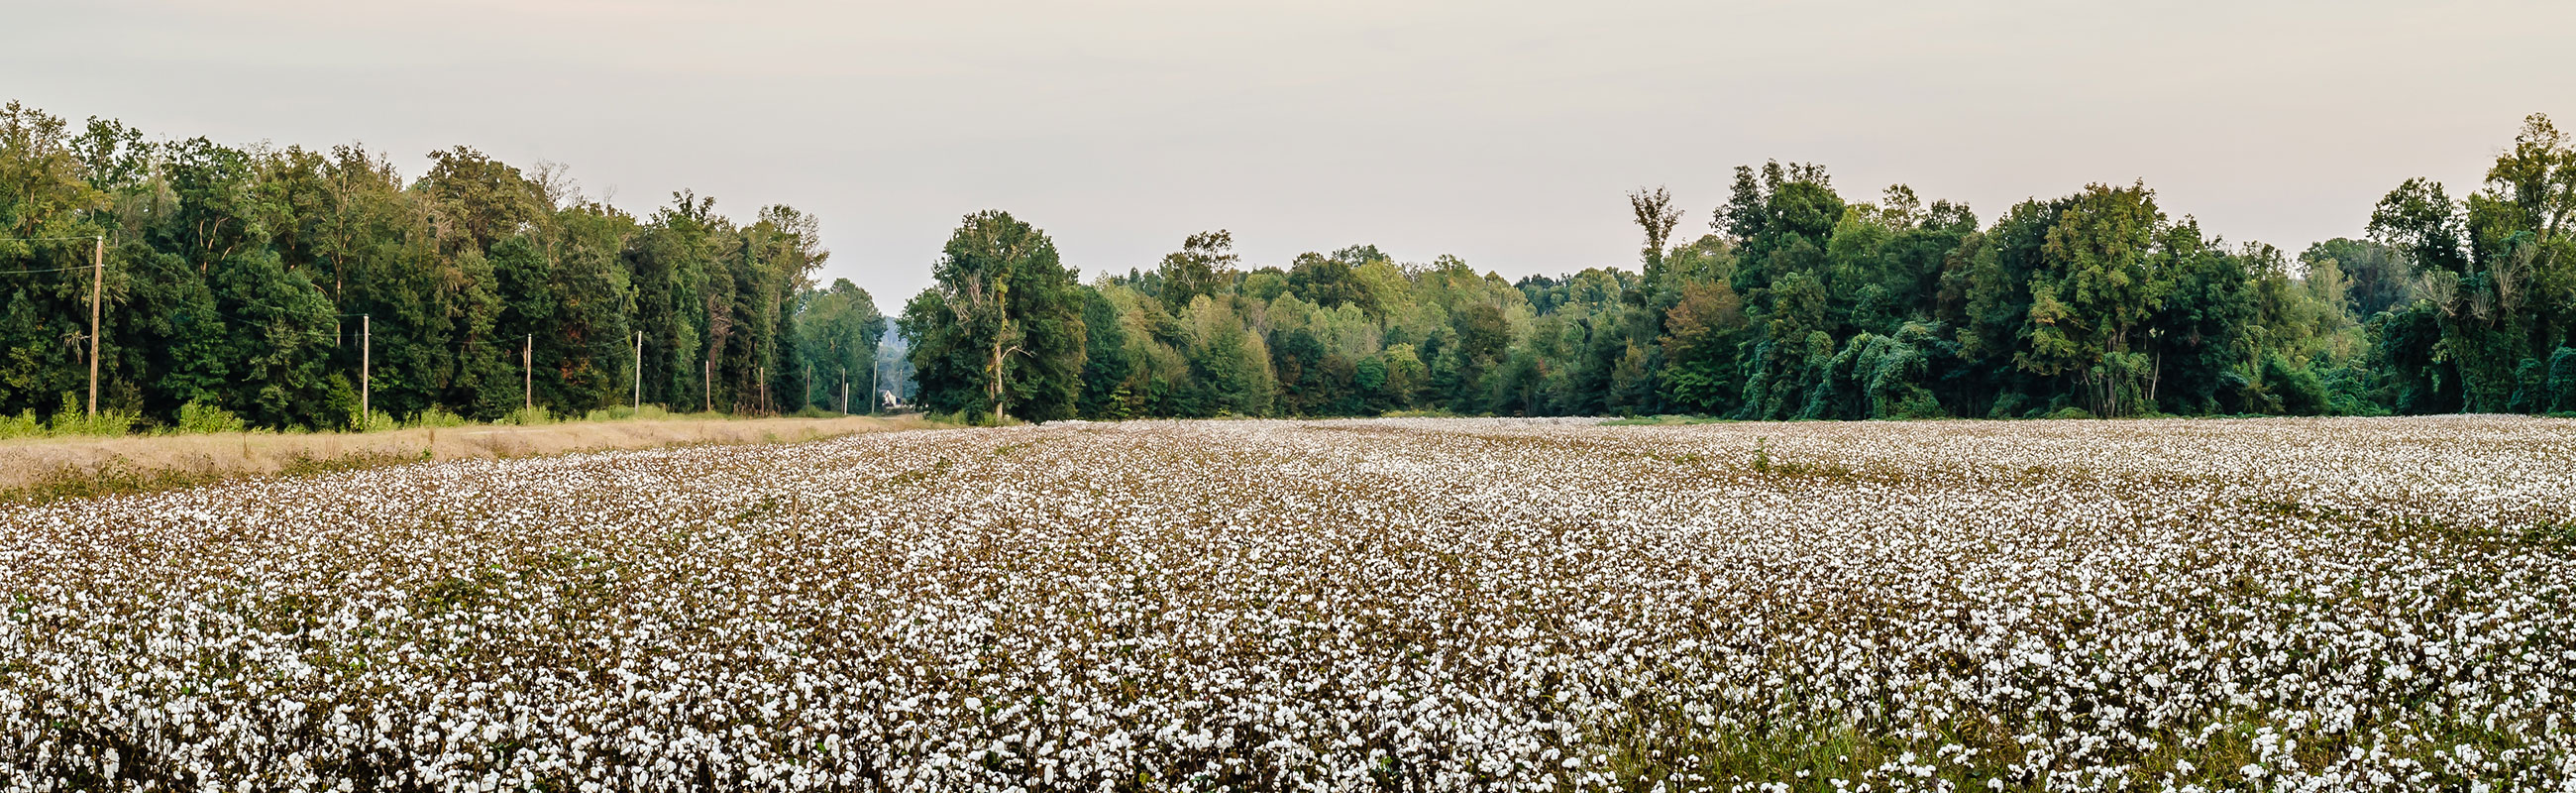 Cotton field textile industry